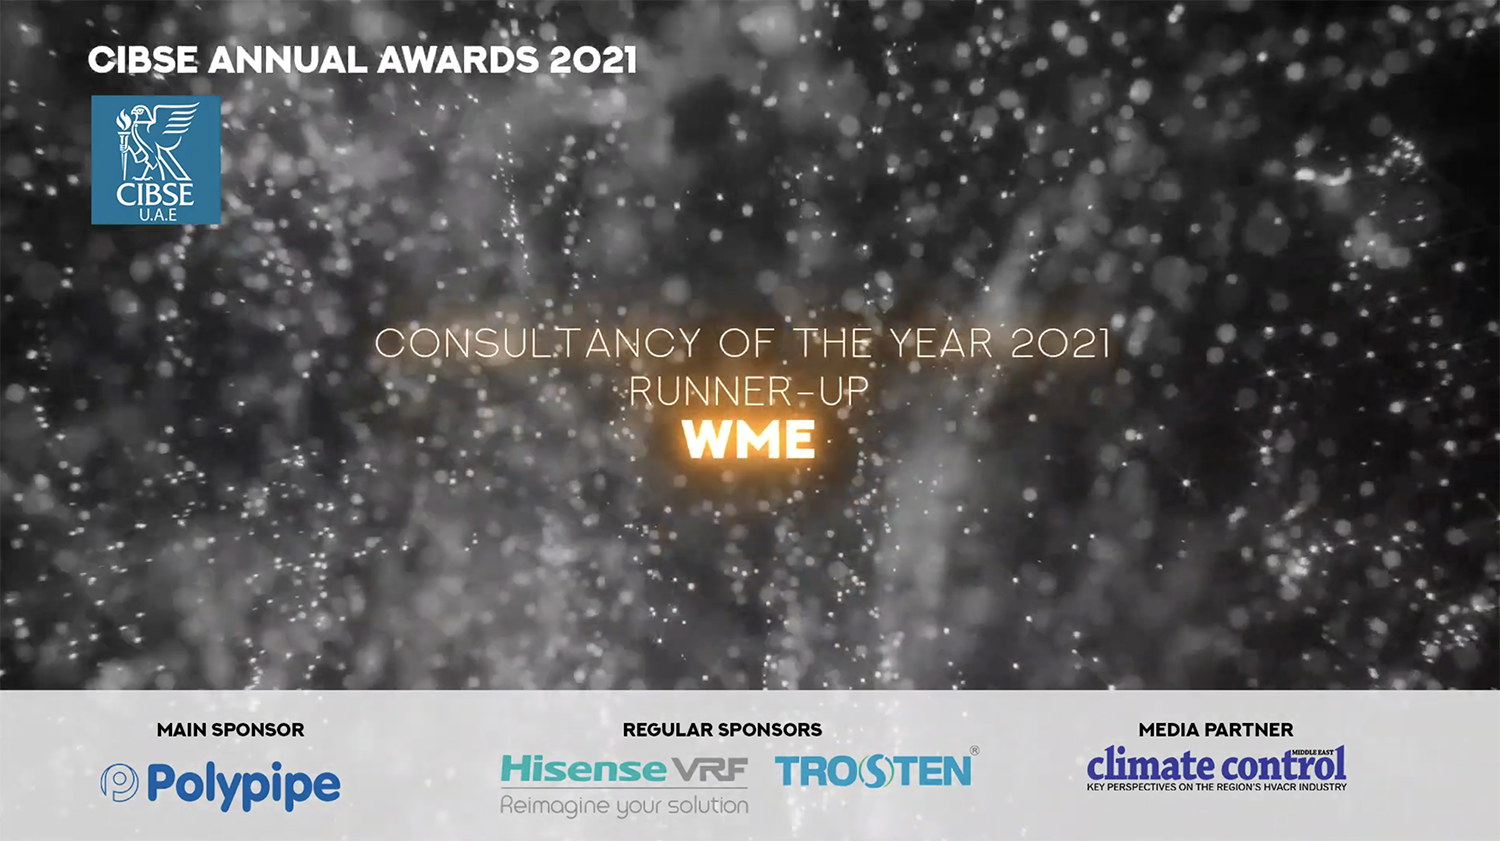 WME Win CIBSE UAE Consultancy of the Year 2021 – Runner Up